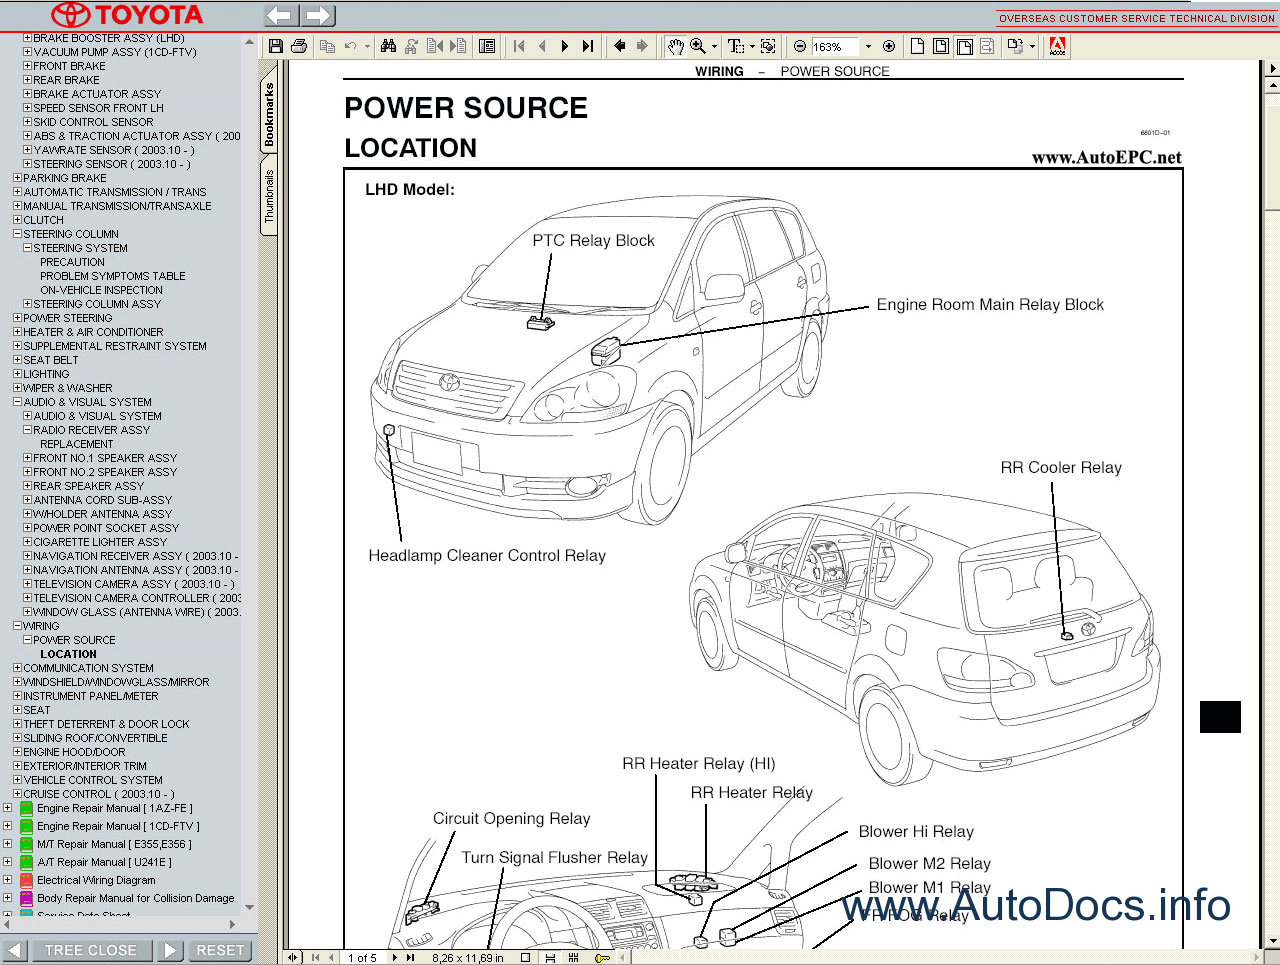 Wiring Diagram Volvo S80 2007 Guide And Troubleshooting Of Toyota Liteace Electrical Also Yaris 2003 2004 Xc90 Parts